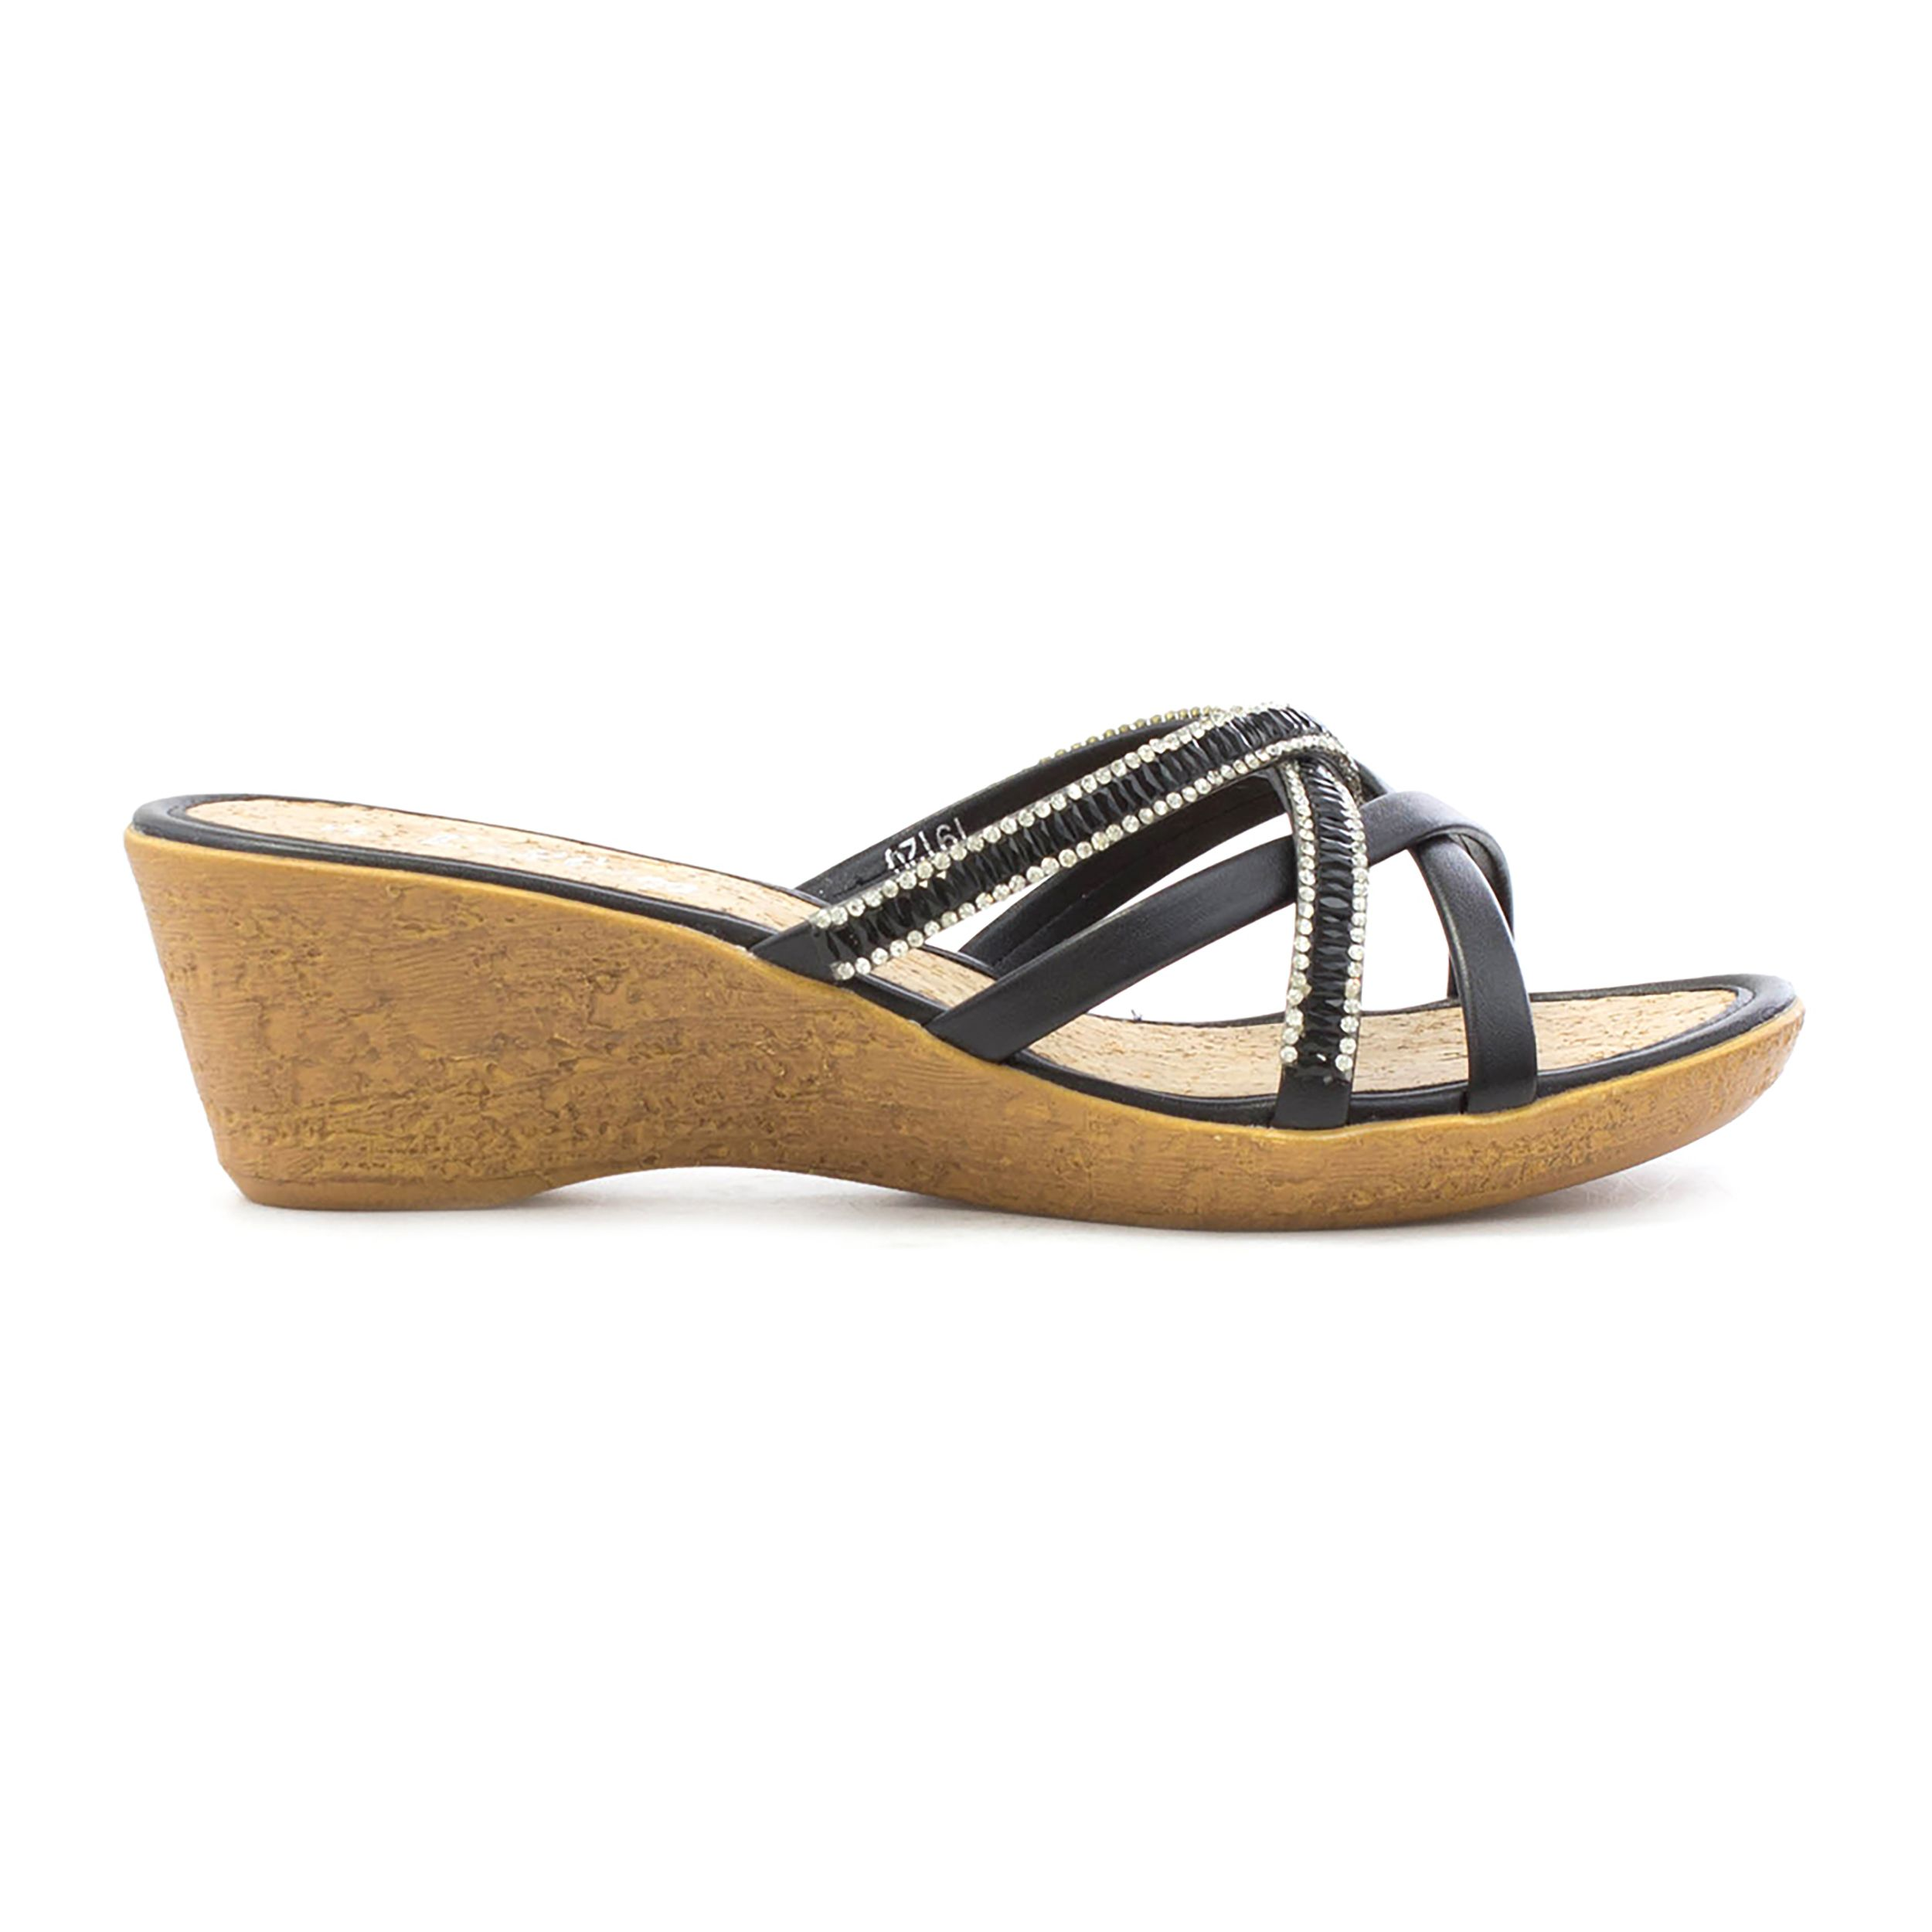 2947d005c8 Lilley Womens Black Strappy Wedge Mule Sandal | SHOE ZONE | SS18 ...